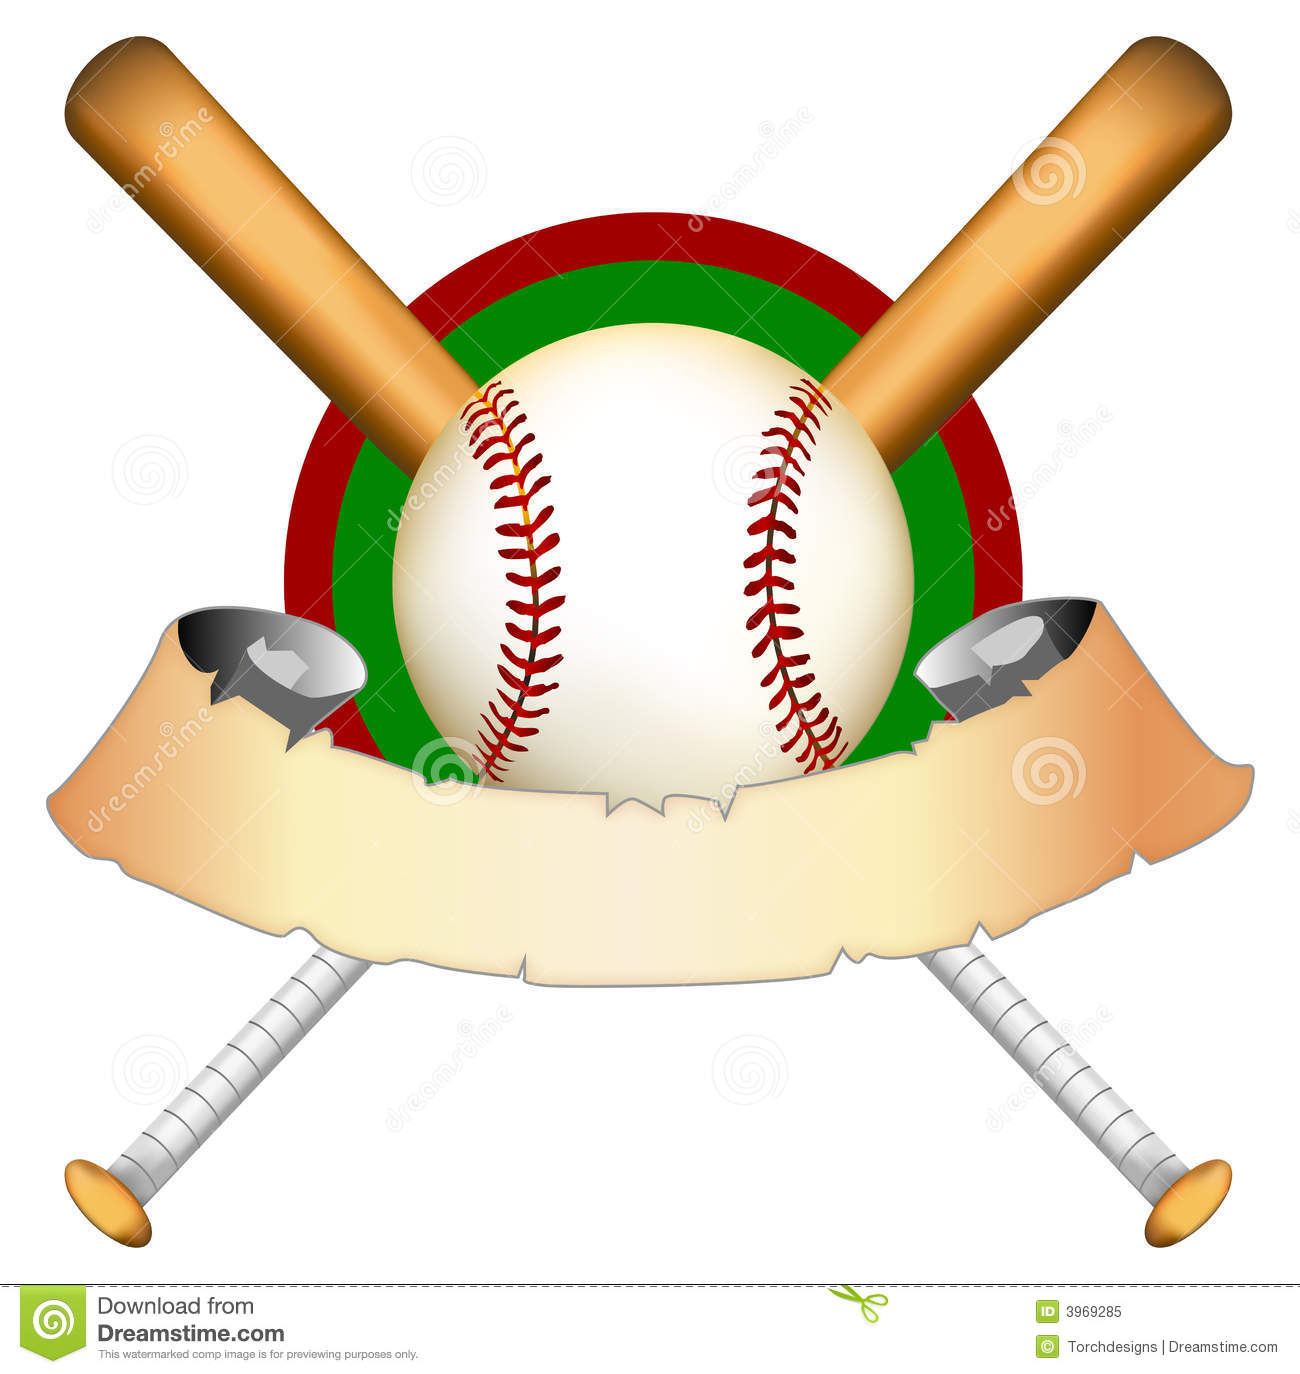 baseball graphic illustration stock illustration crossed bats clipart crossed softball bats clipart